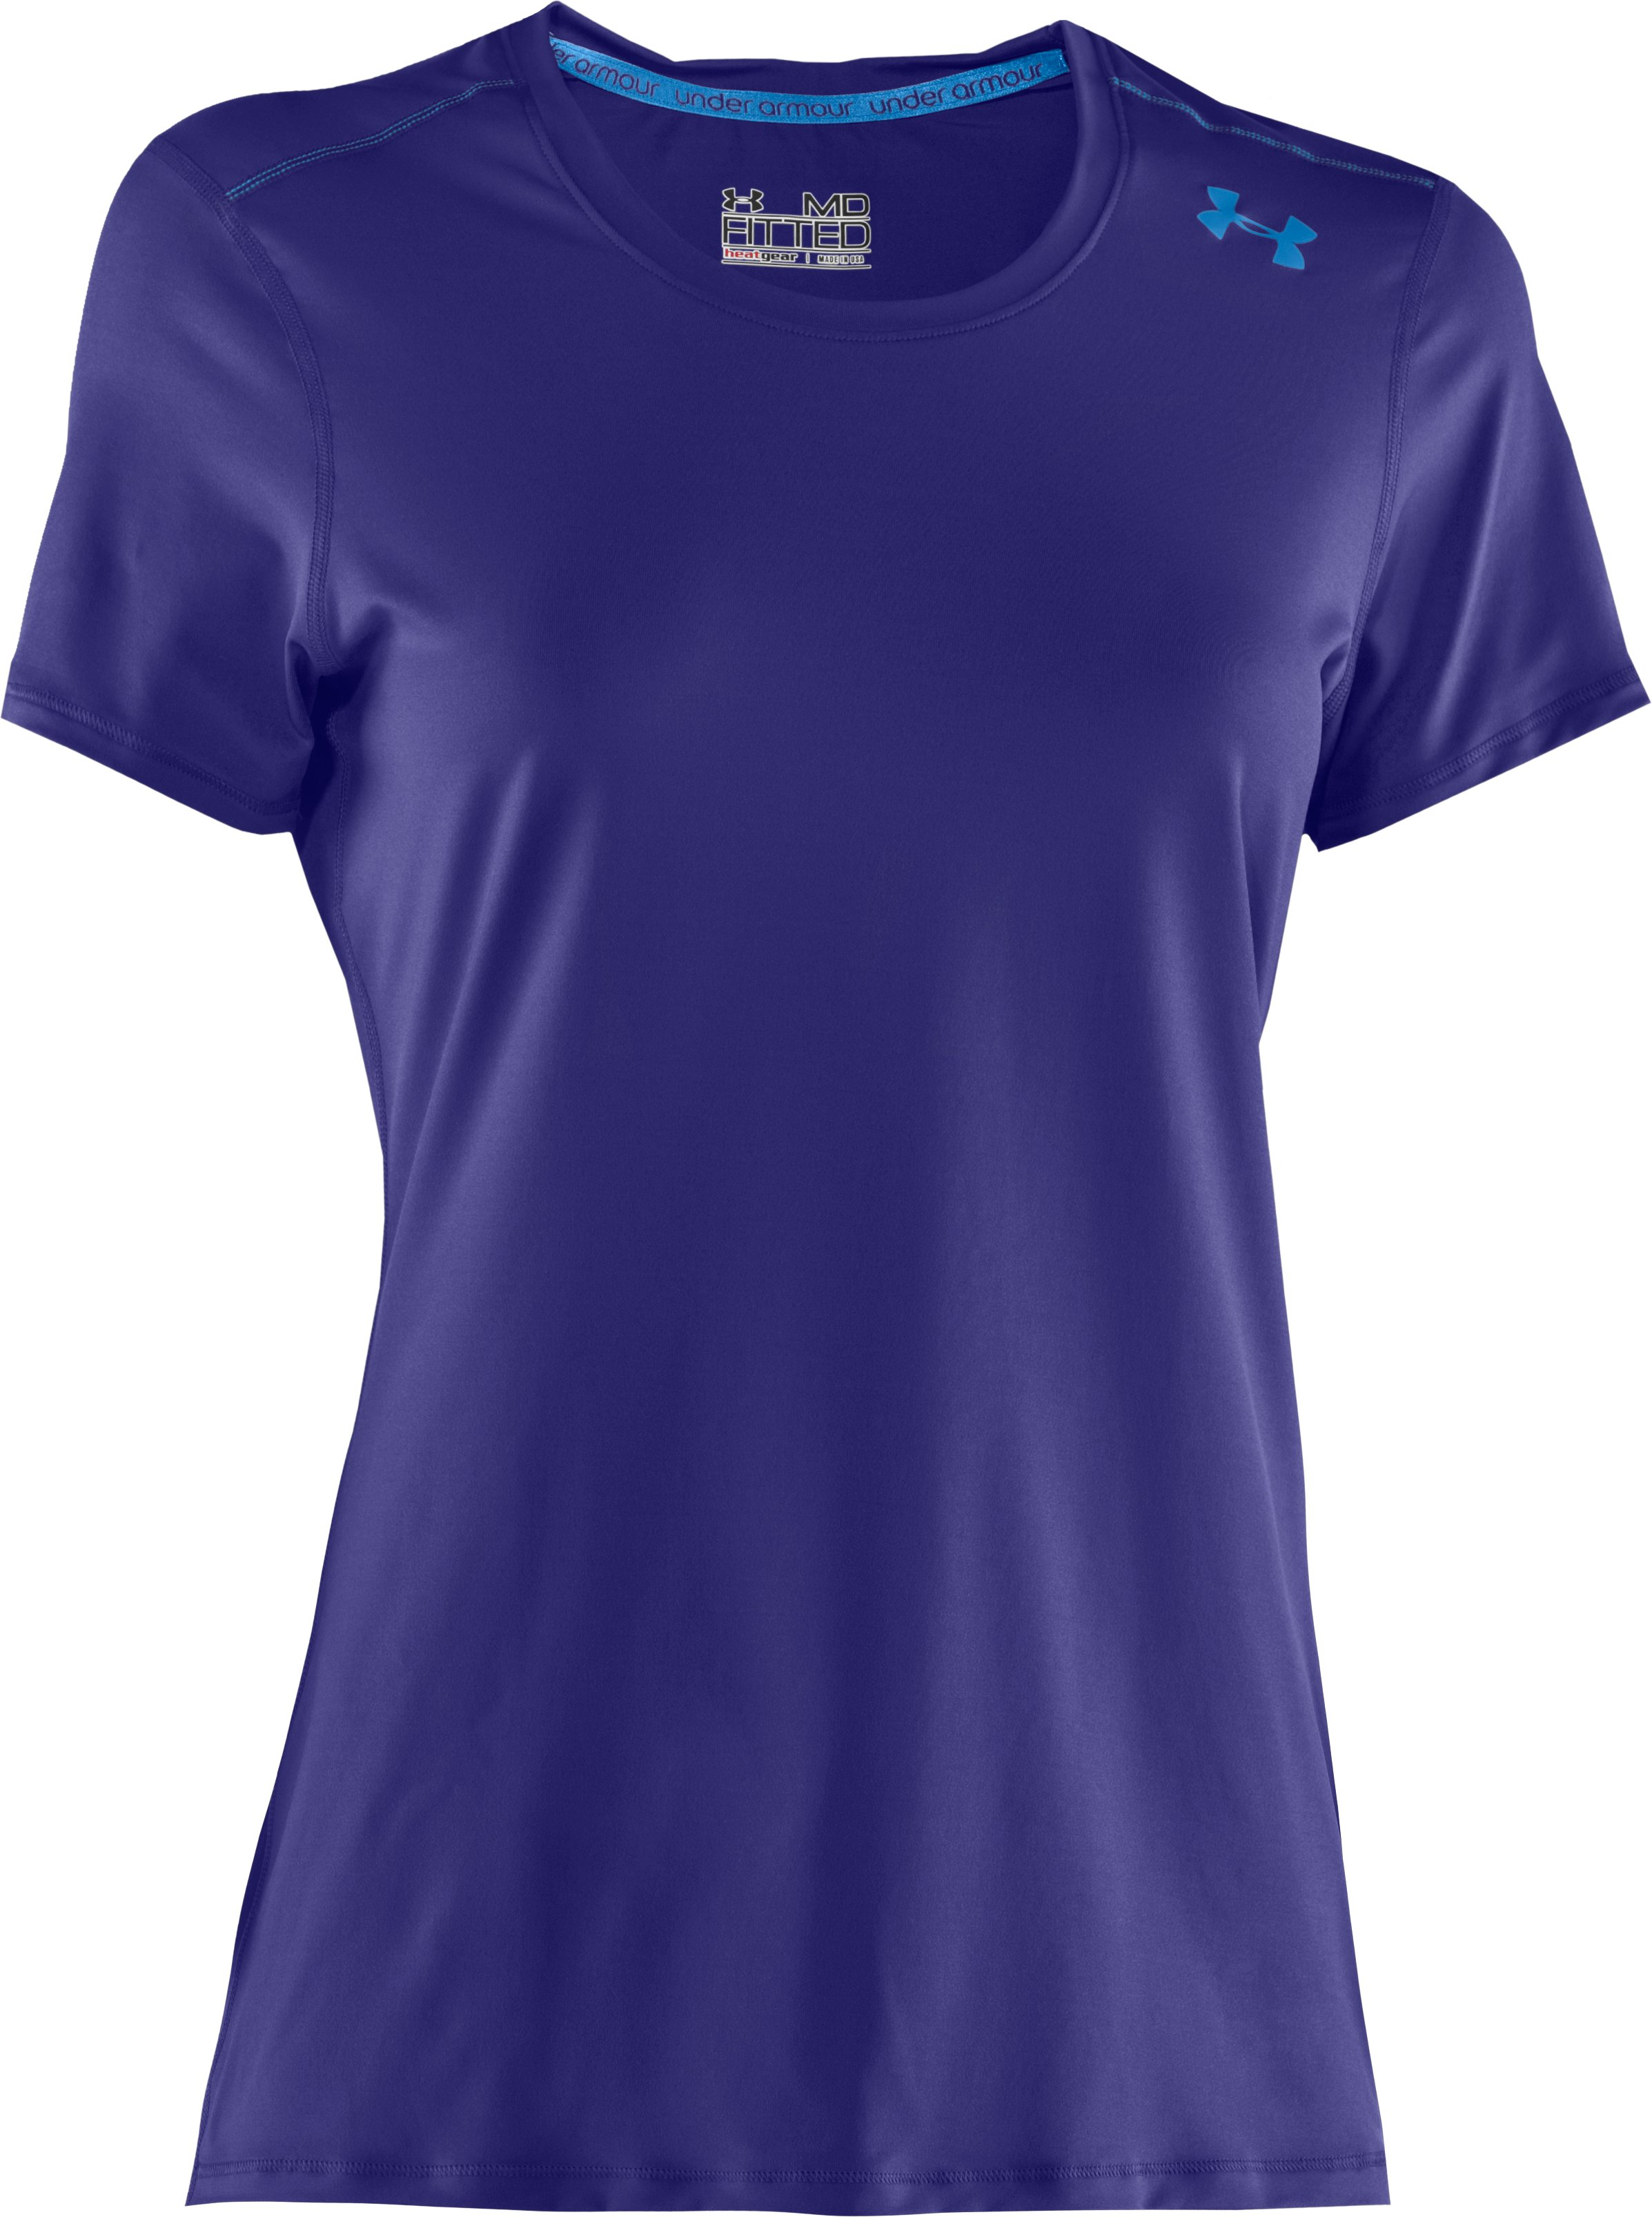 Women's HeatGear® Sonic Short Sleeve, Monarchy, undefined